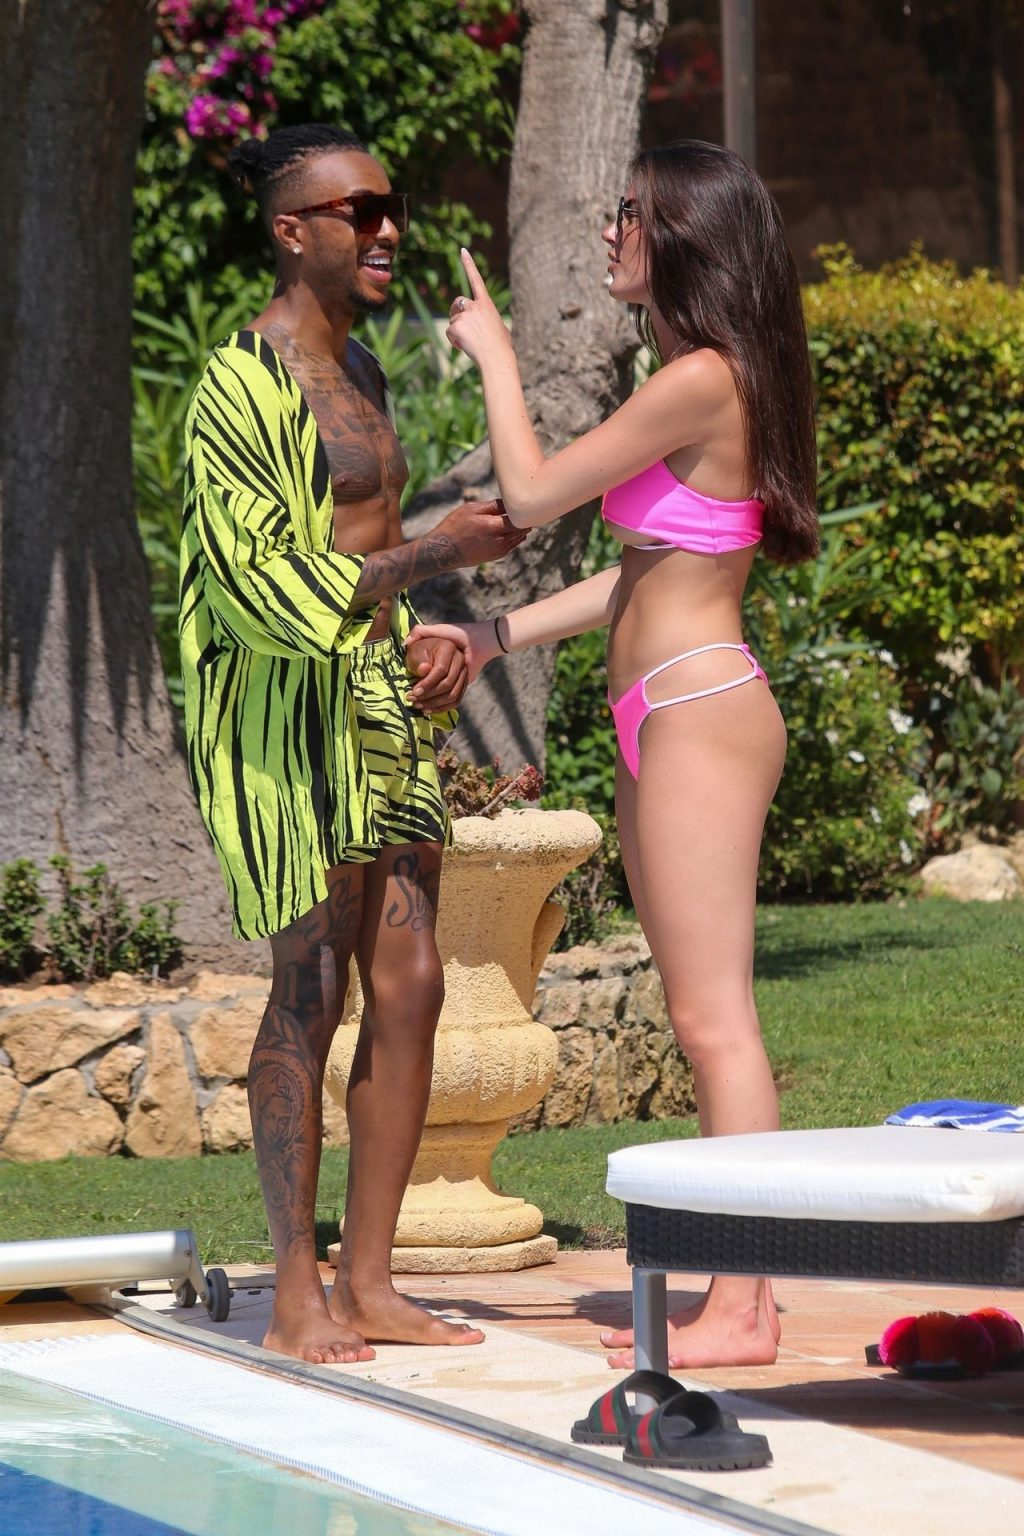 Rebecca Gormley & Biggs Chris are in a Playful Mood Whole on Holiday in Marbella (75 Photos)